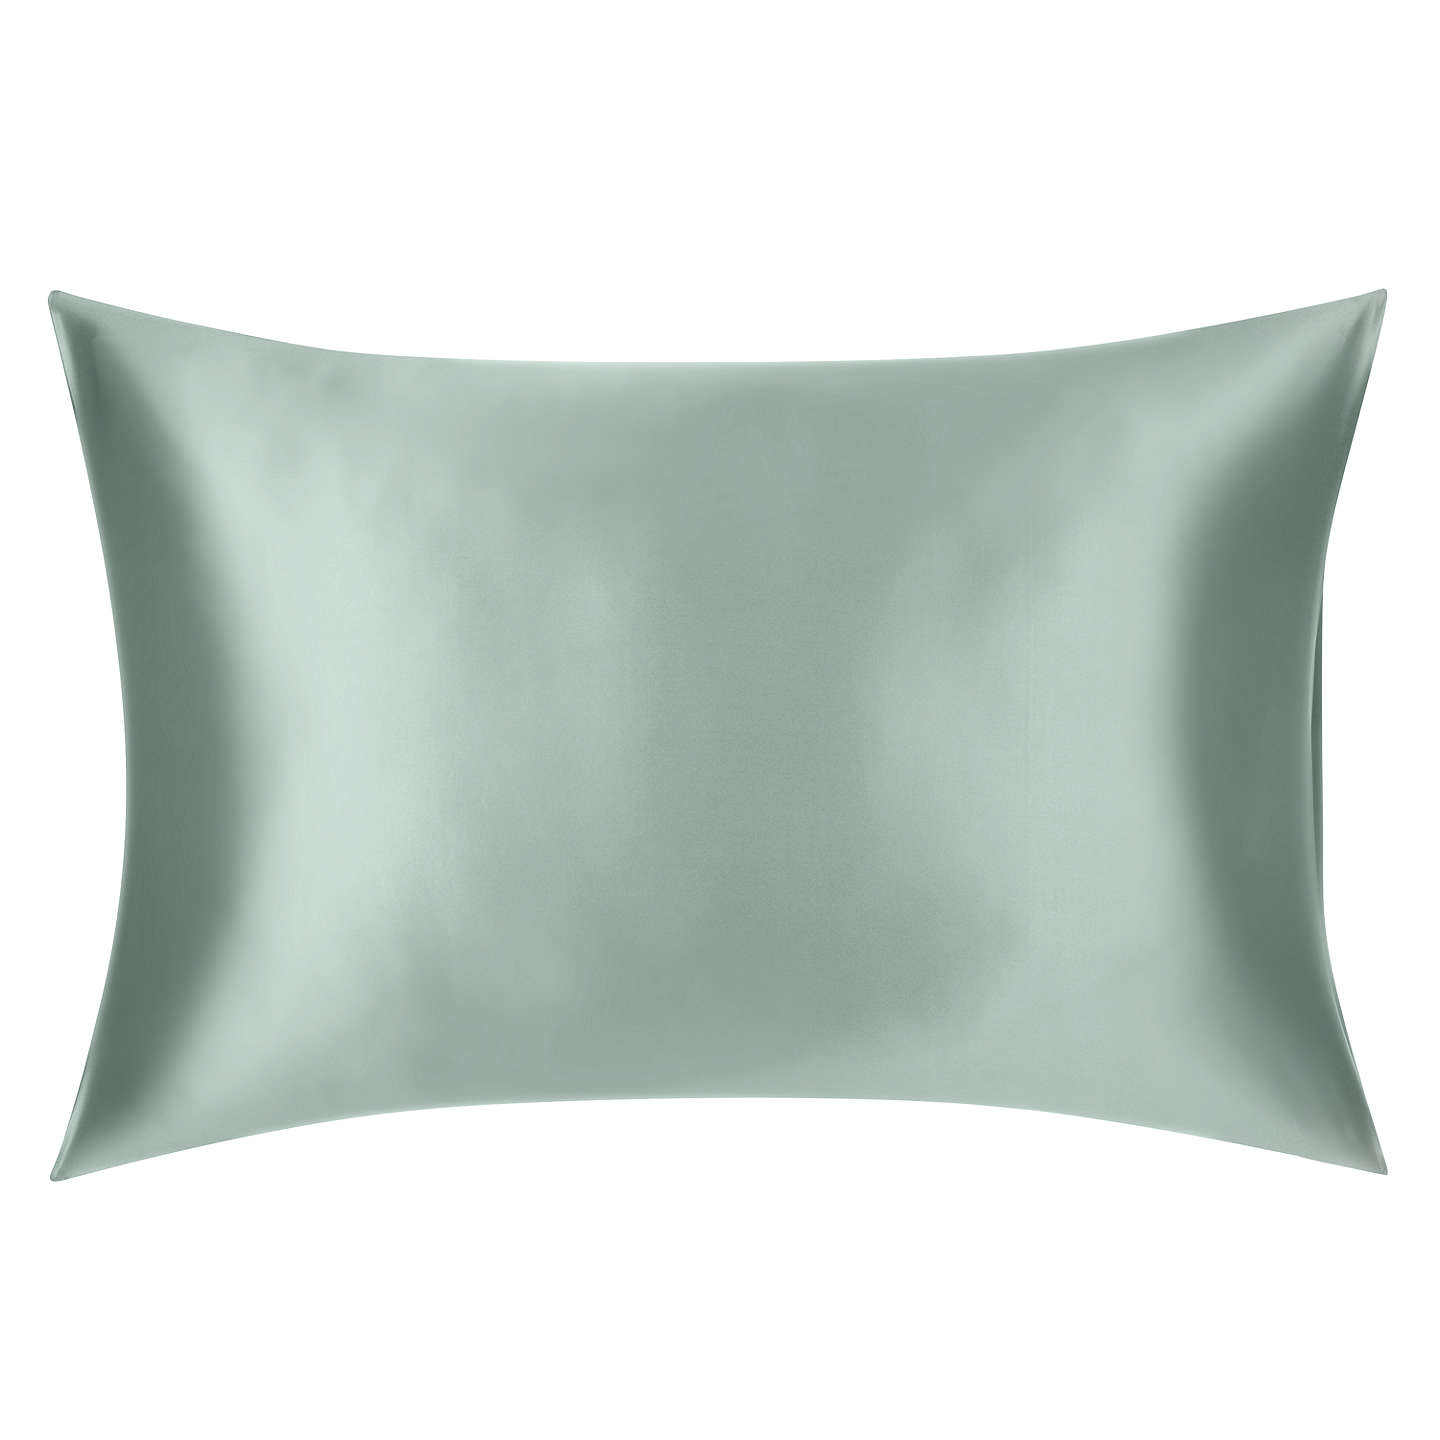 Solid Fabric Silky Satin Polyester Shiny Pillowcases